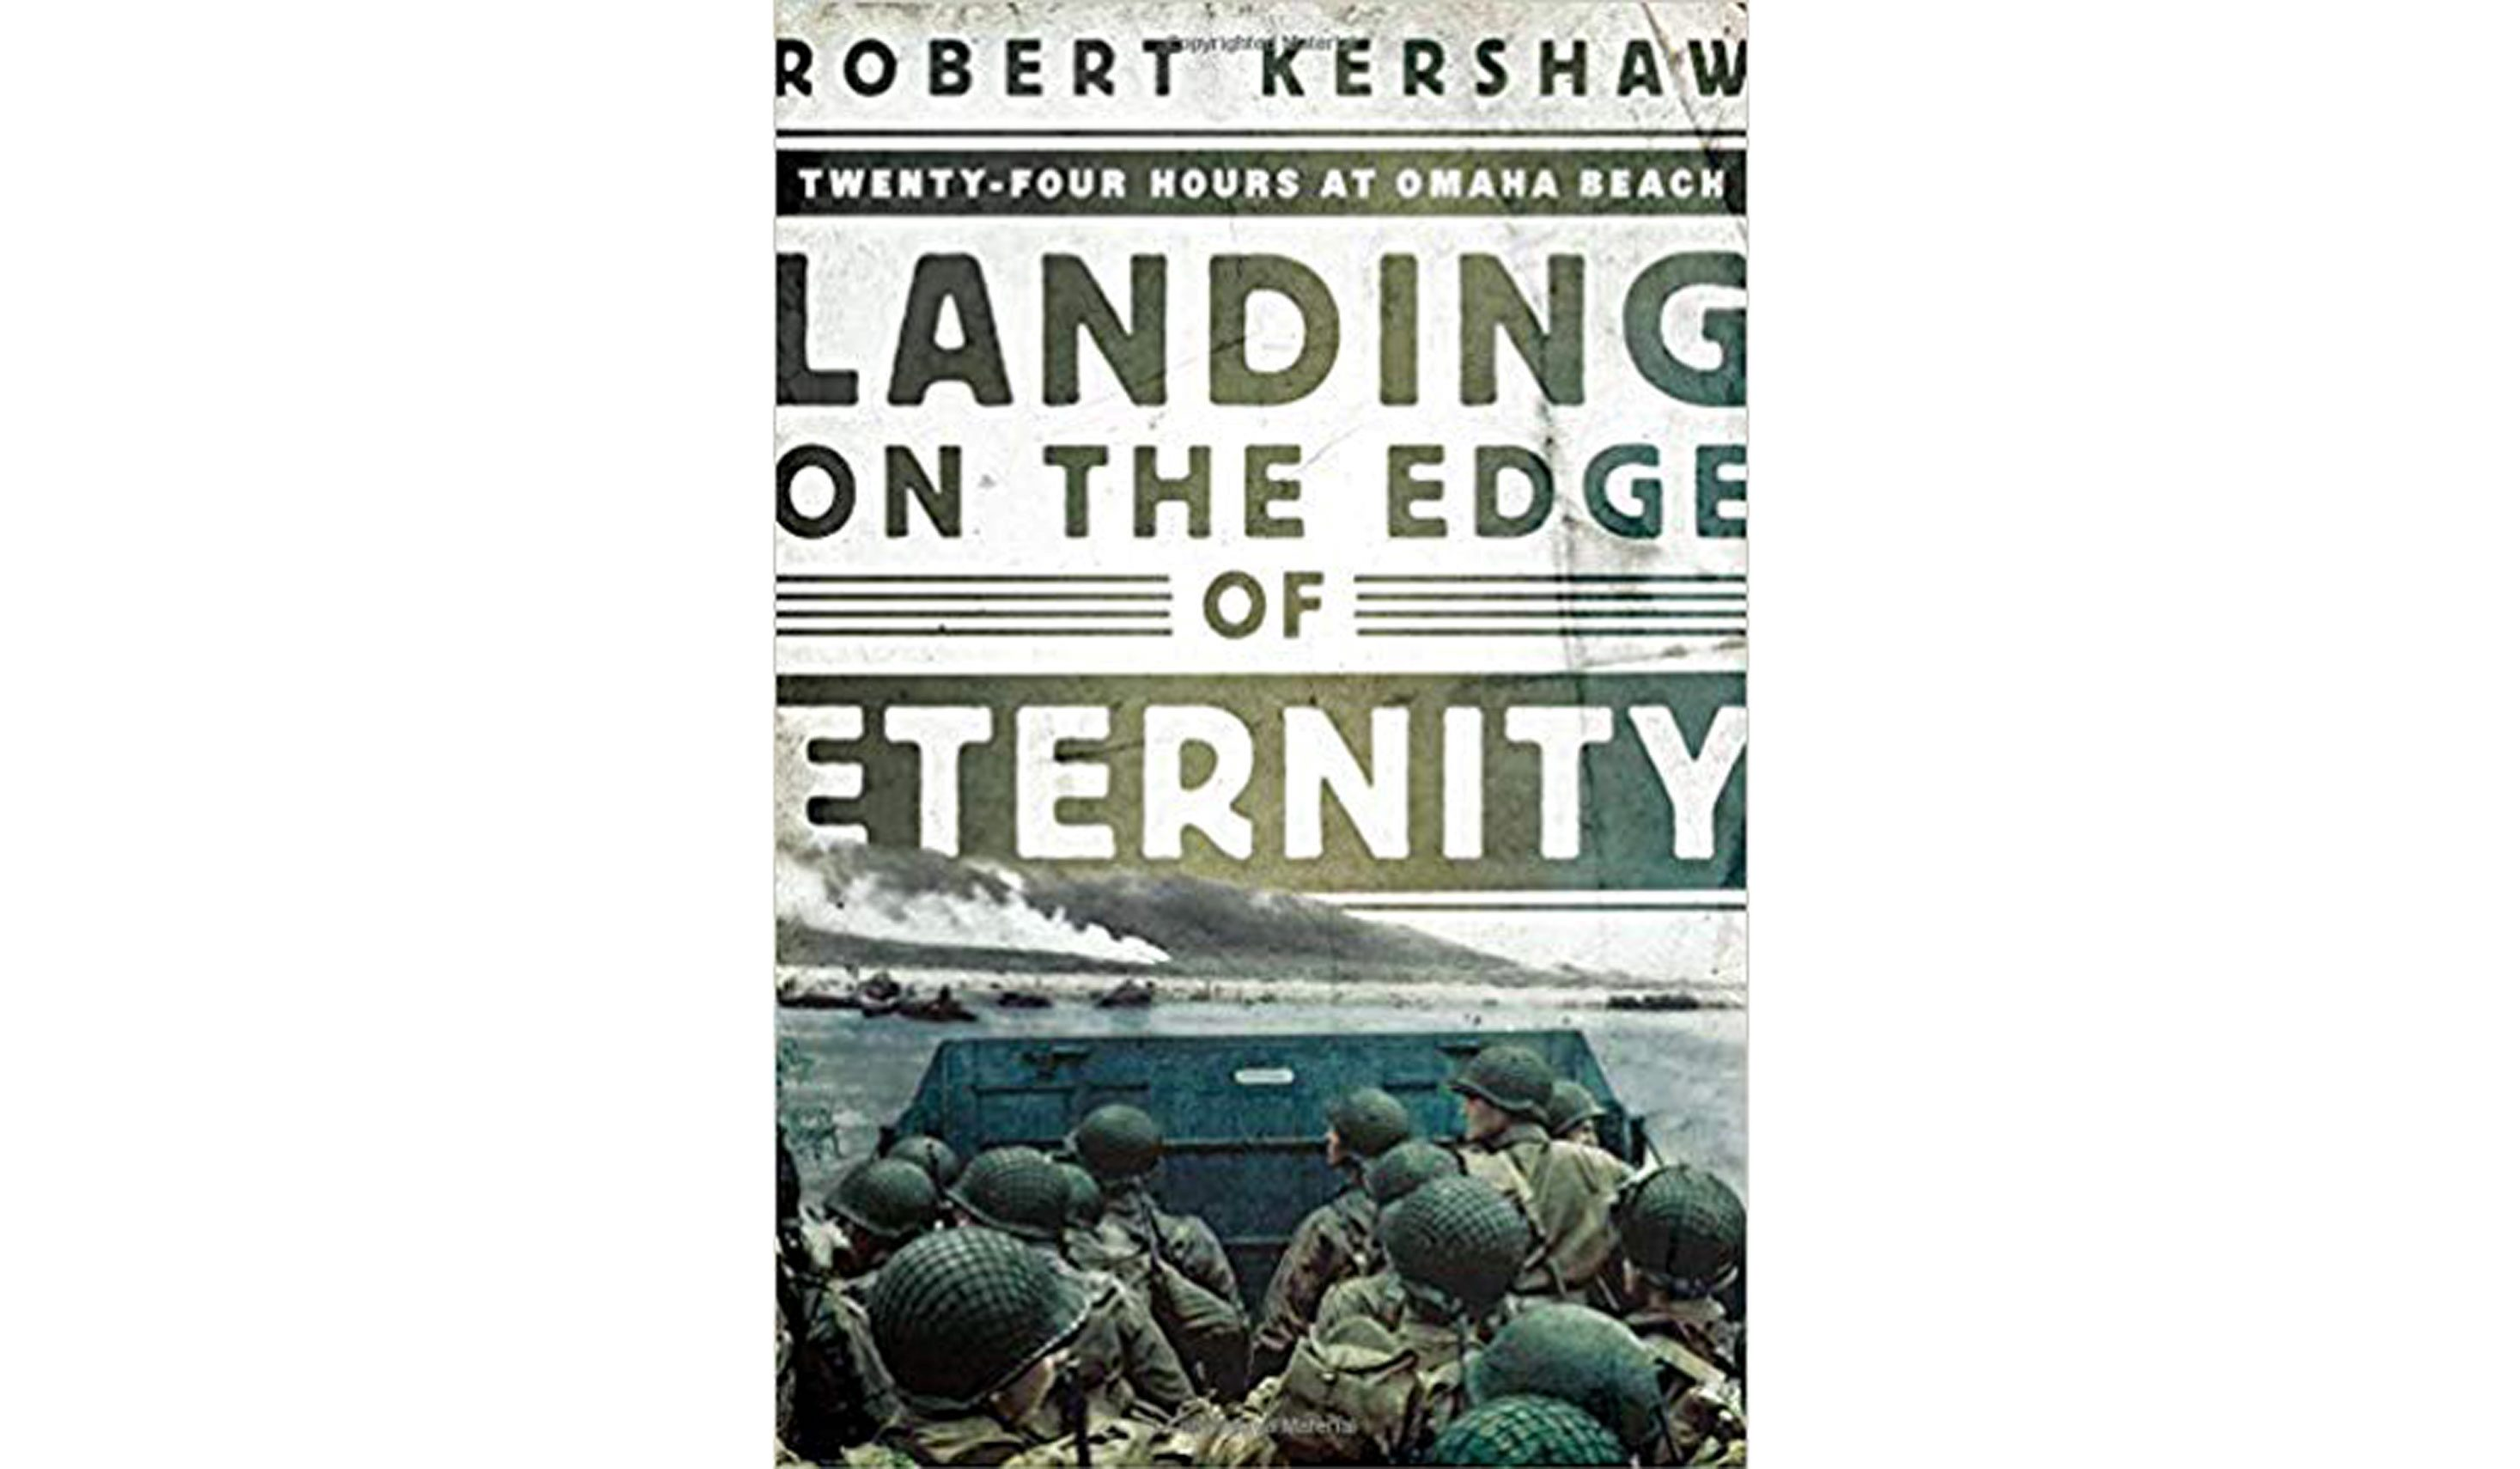 BOOK REVIEW: 'Landing on the Edge of Eternity' by Robert Kershaw